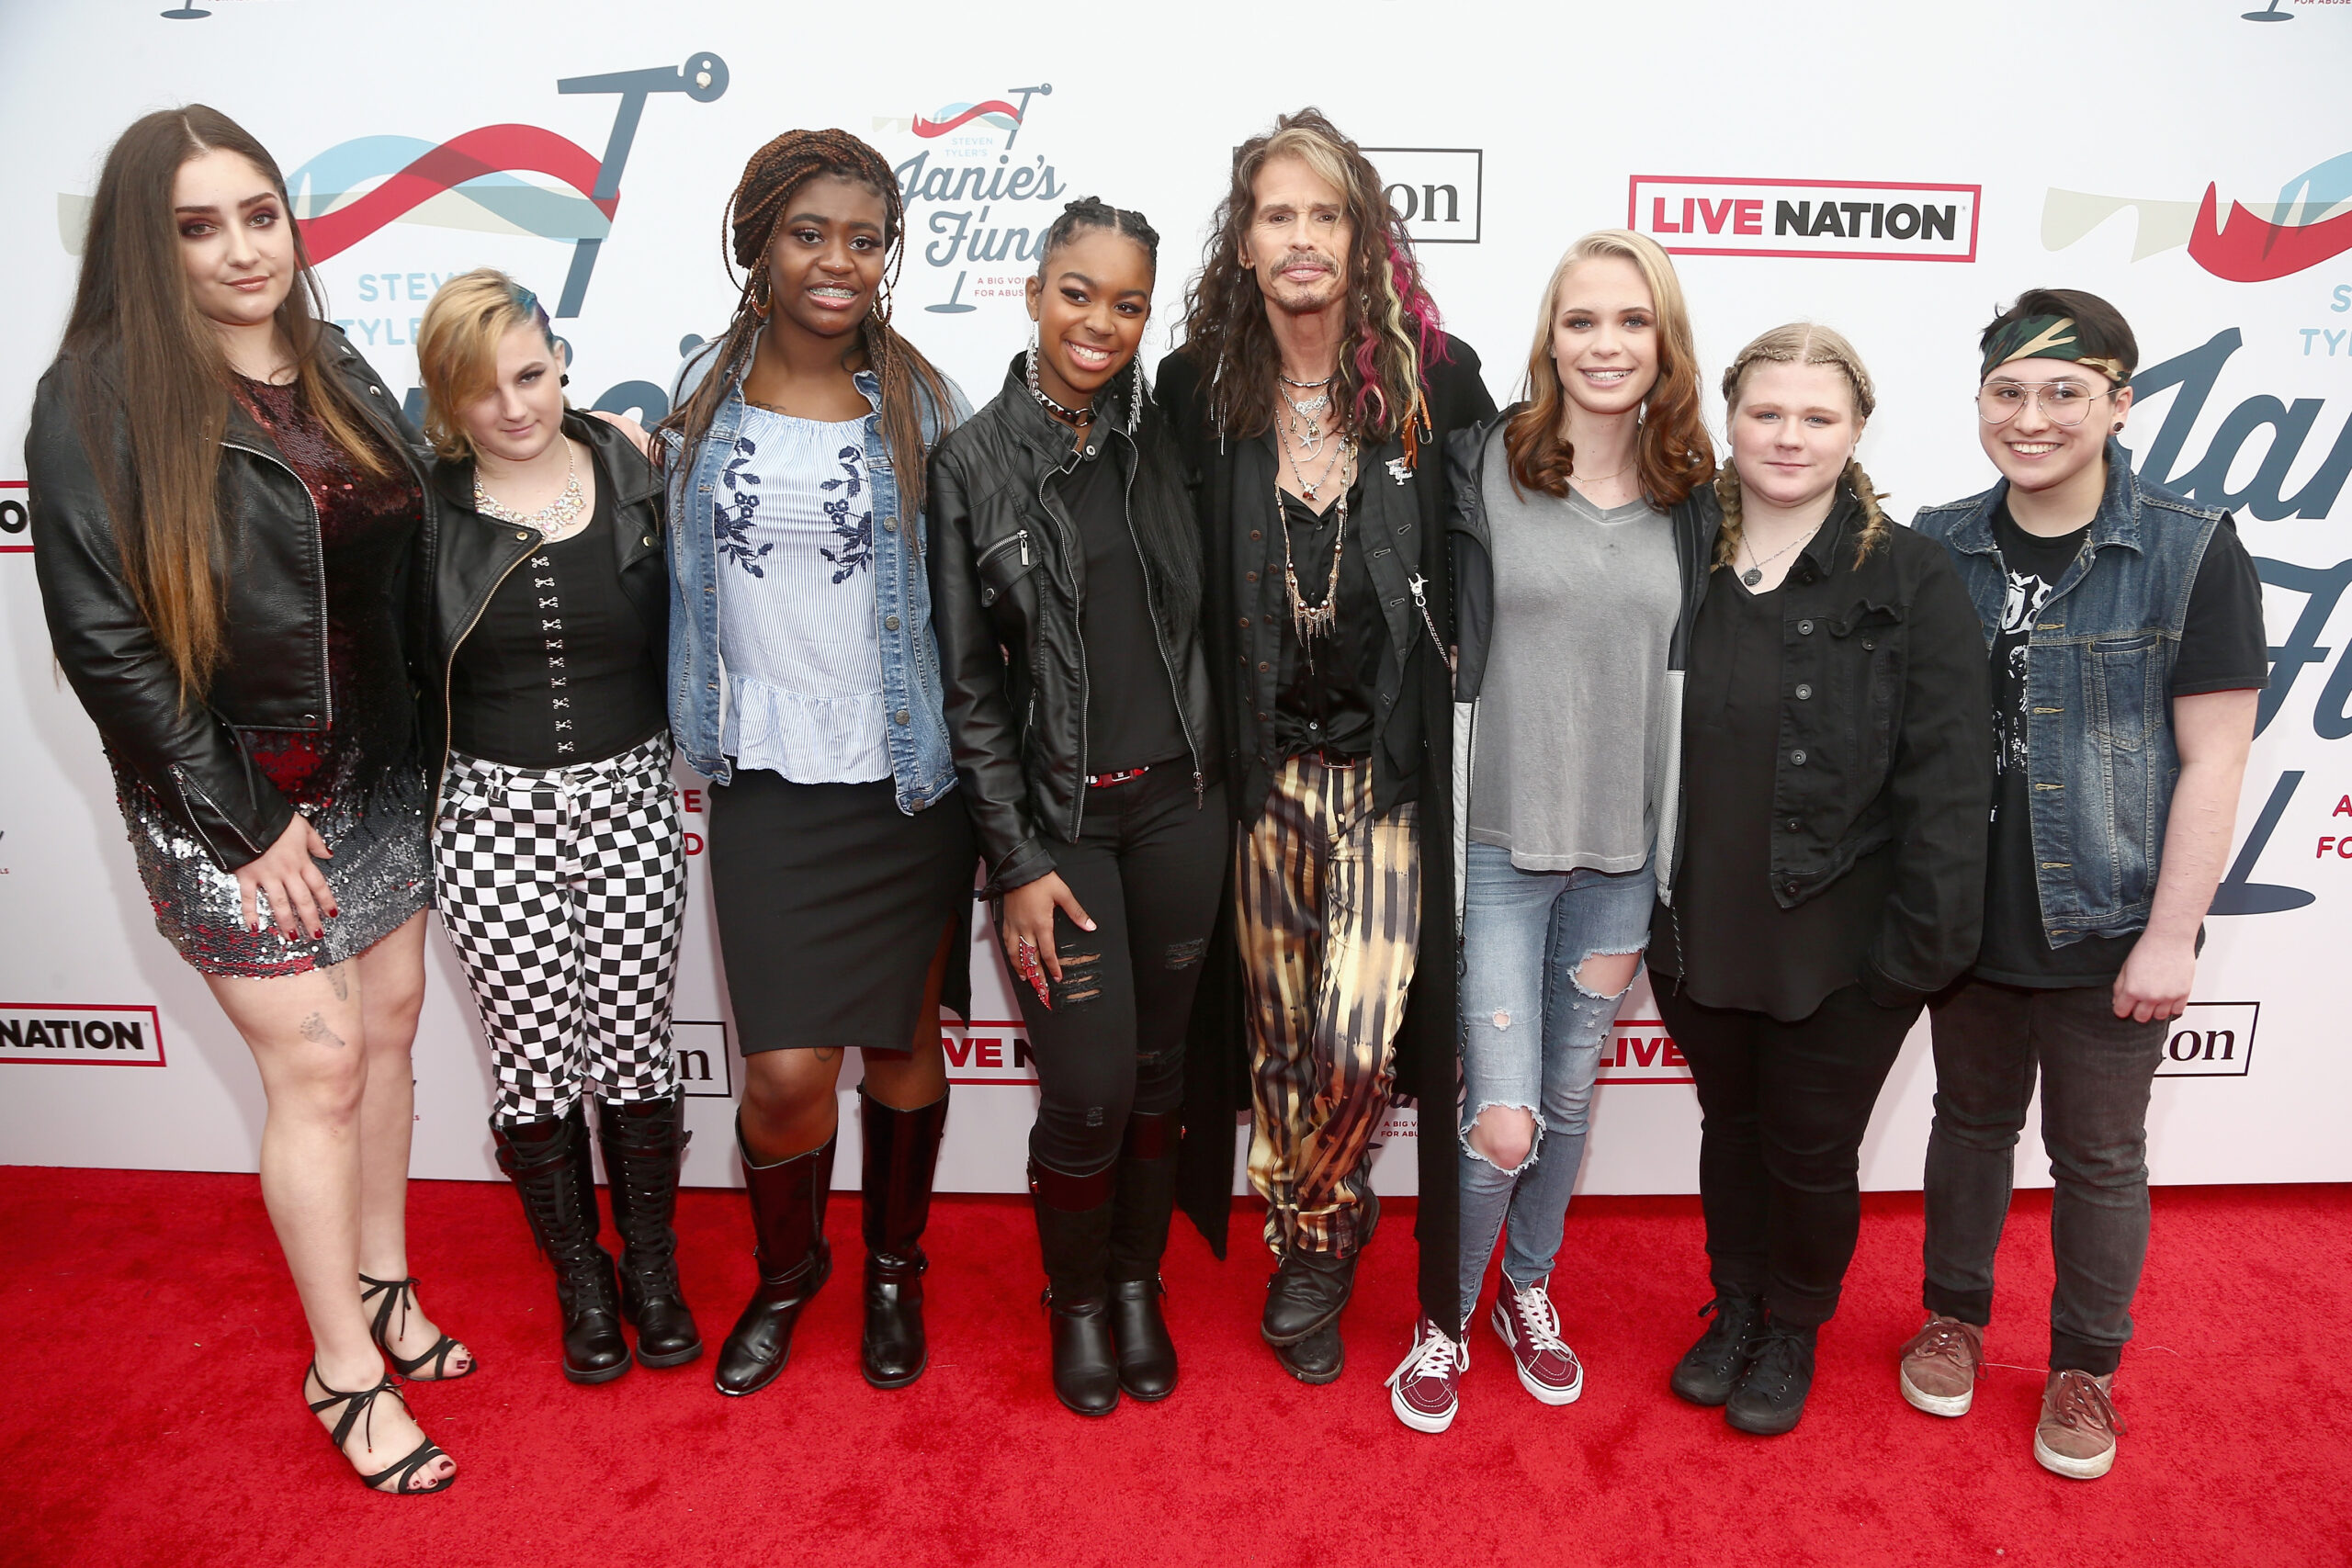 Pastry and Steven Tyler's Janie's Fund Launch Movement to Empower Girls